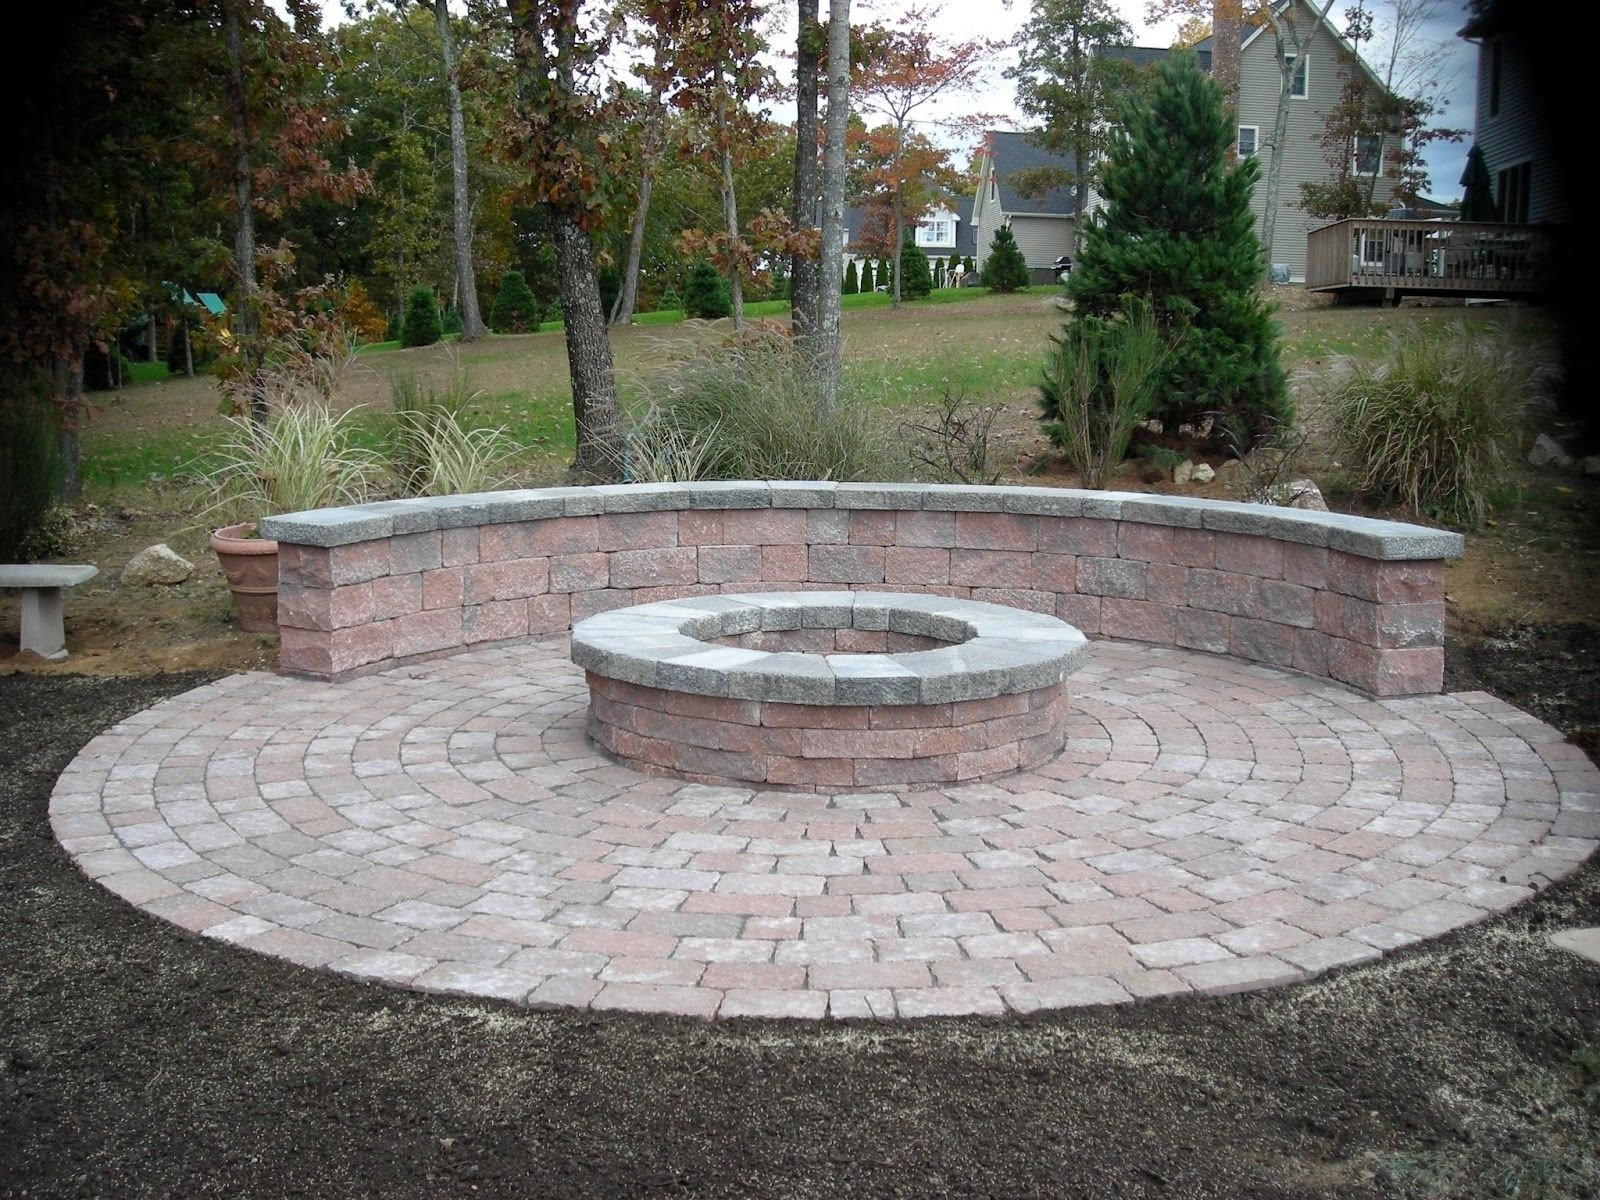 10 Great Outdoor Fire Pit Ideas Backyard awesome paver patio firepit outdoor fire pit design ideas spaces and 2020